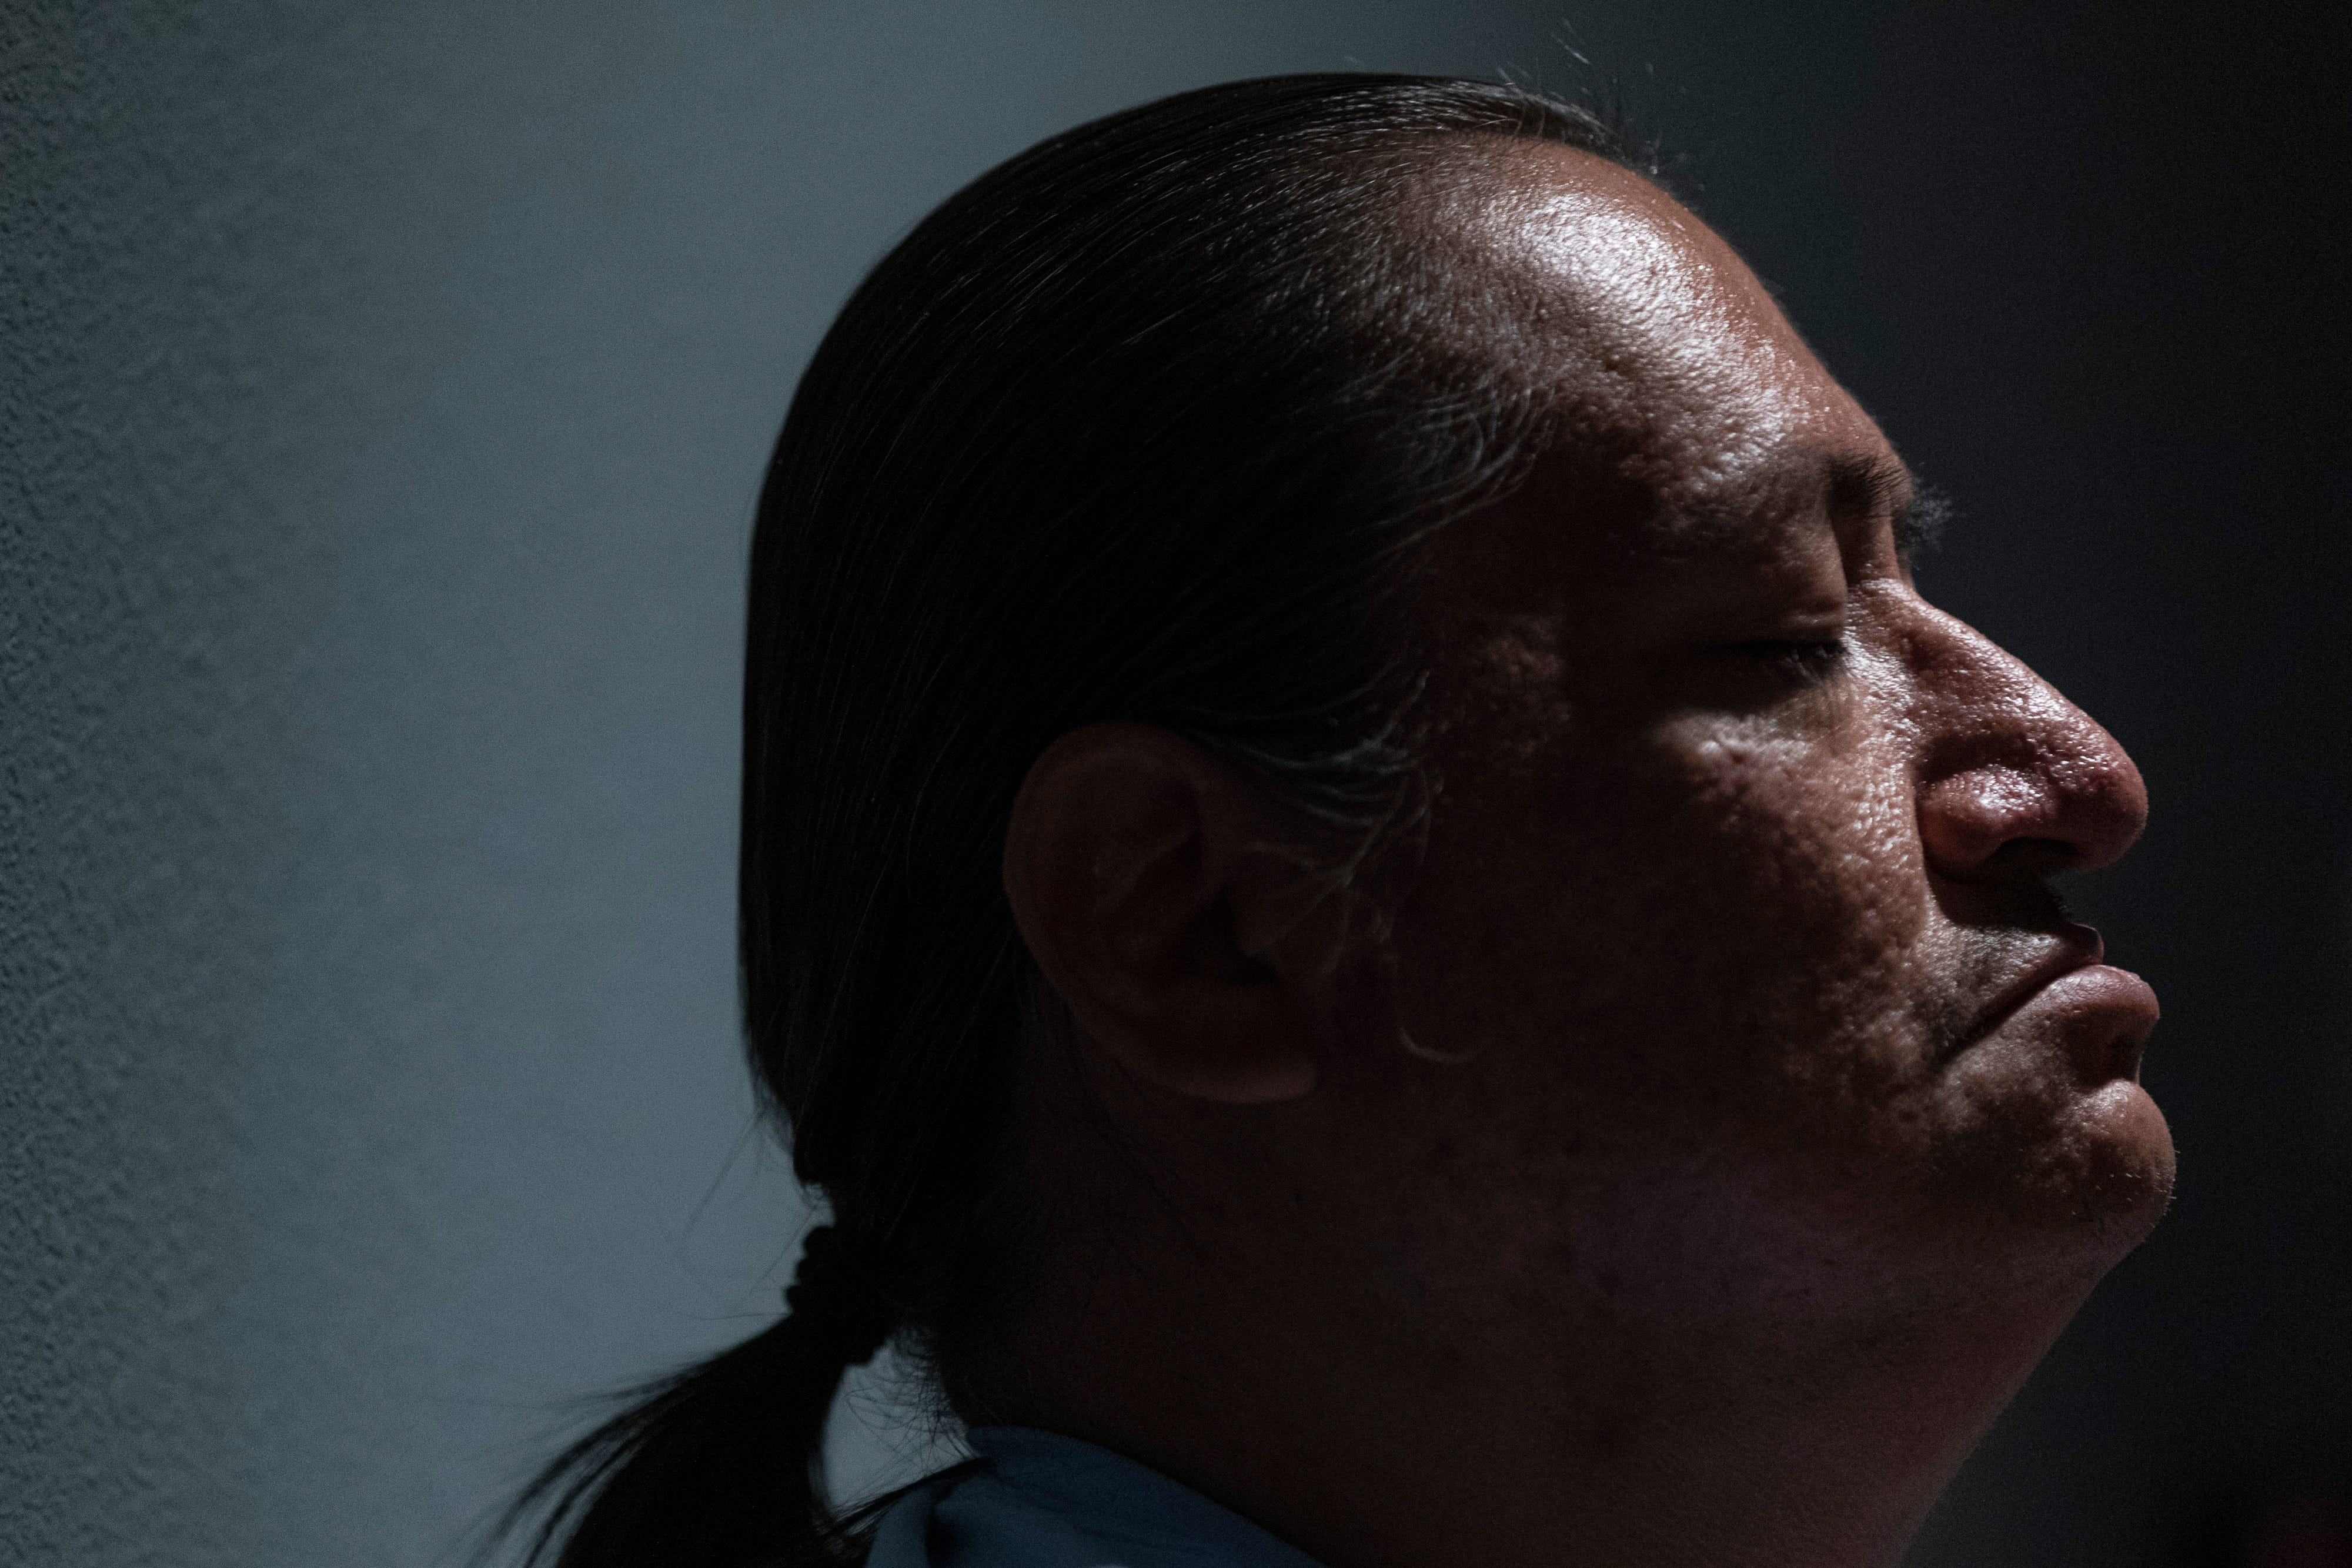 Kerry Hunts Along closes his eyes in meditation during the morning smudging at the Good Road Recovery Center in Bismarck, North Dakota. June 22, 2021